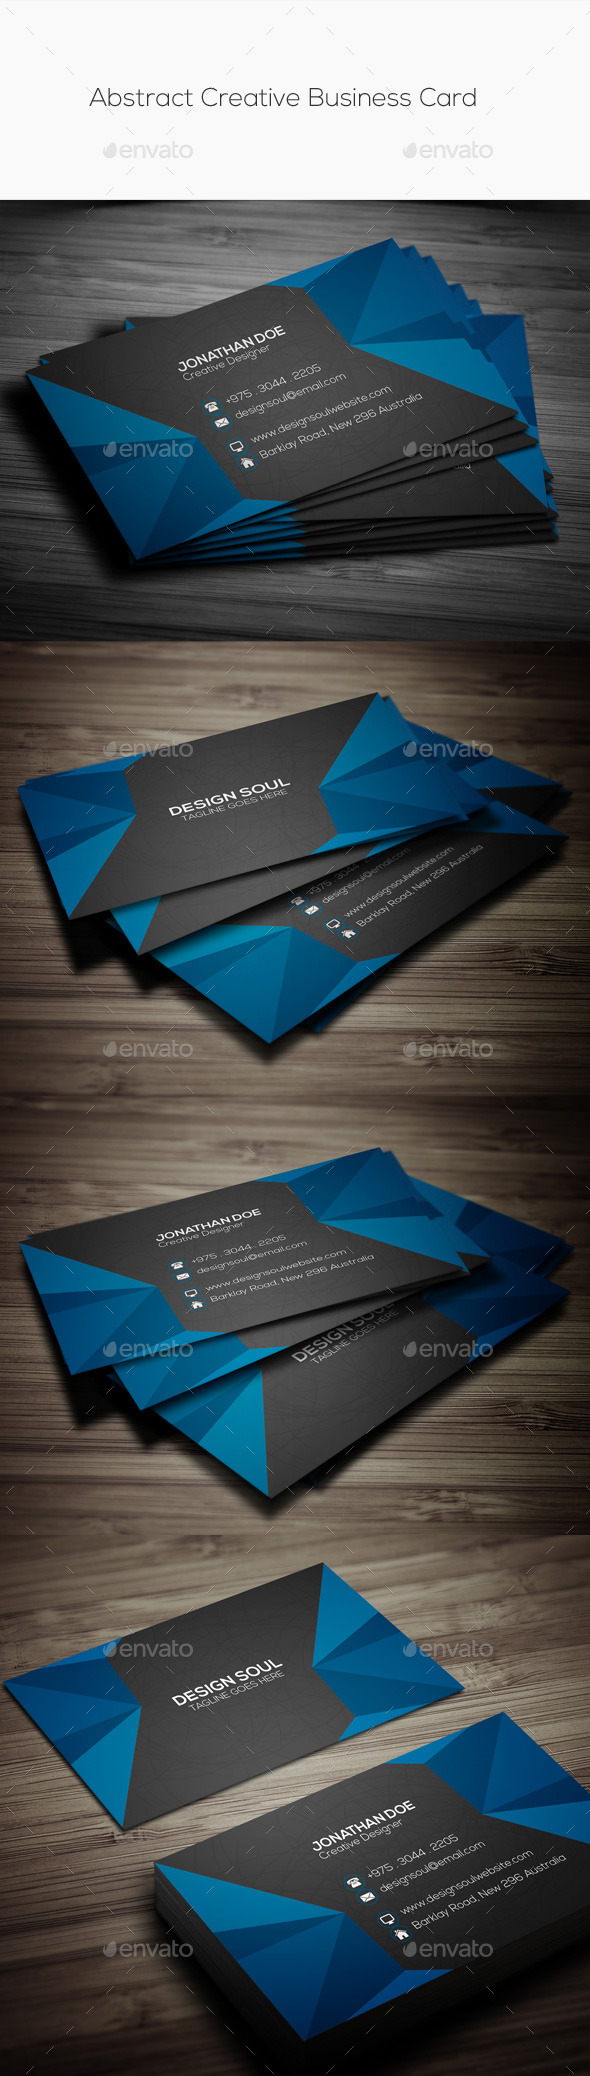 GraphicRiver Abstract Creative Business Card 11252965